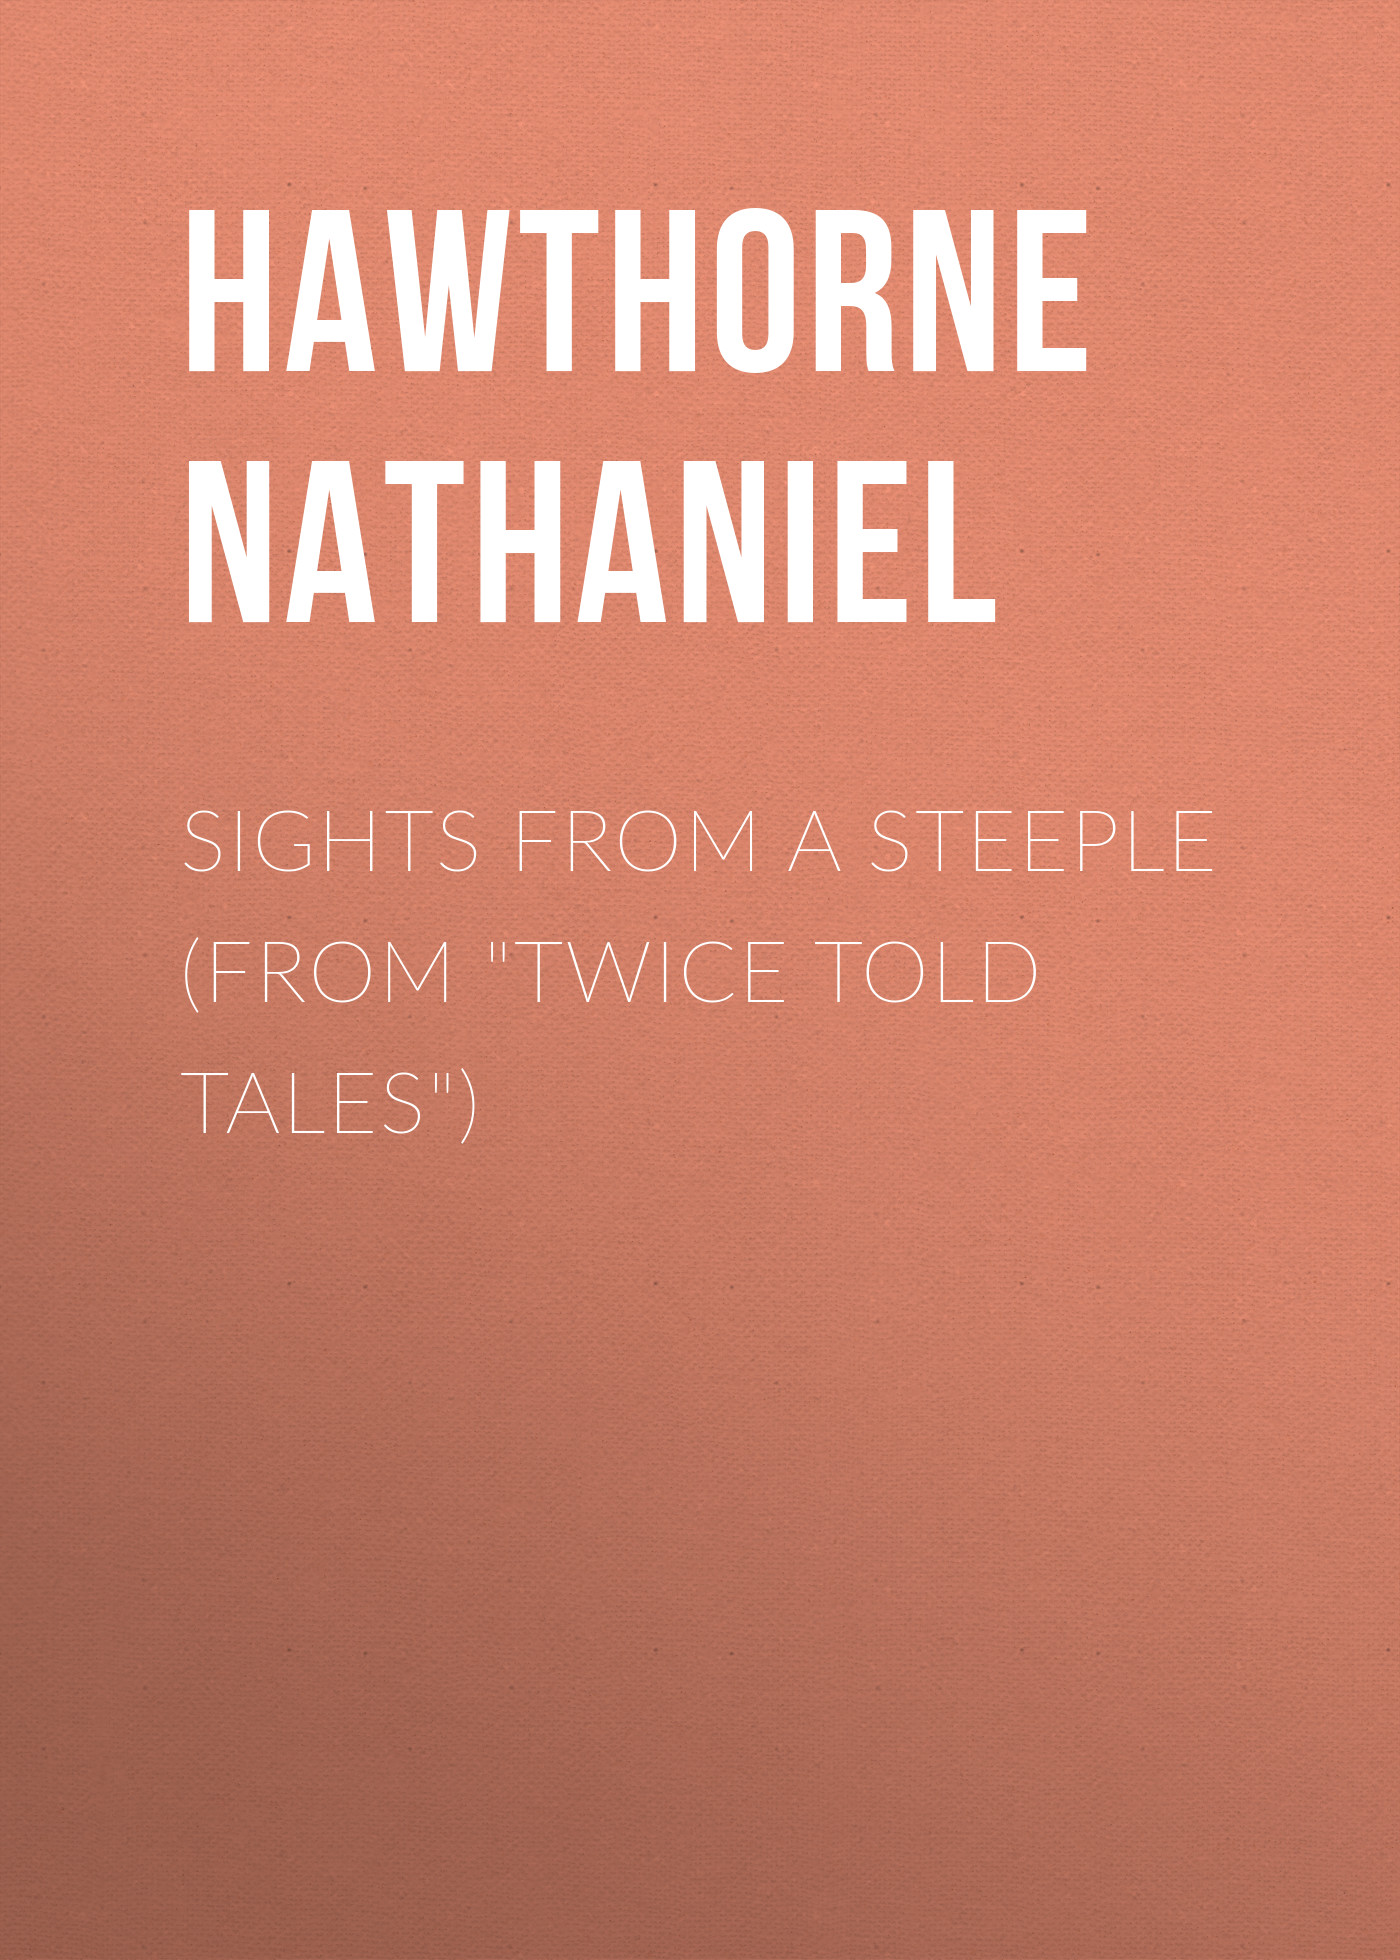 Hawthorne Nathaniel Sights from a Steeple (From Twice Told Tales) hawthorne nathaniel the threefold destiny from twice told tales